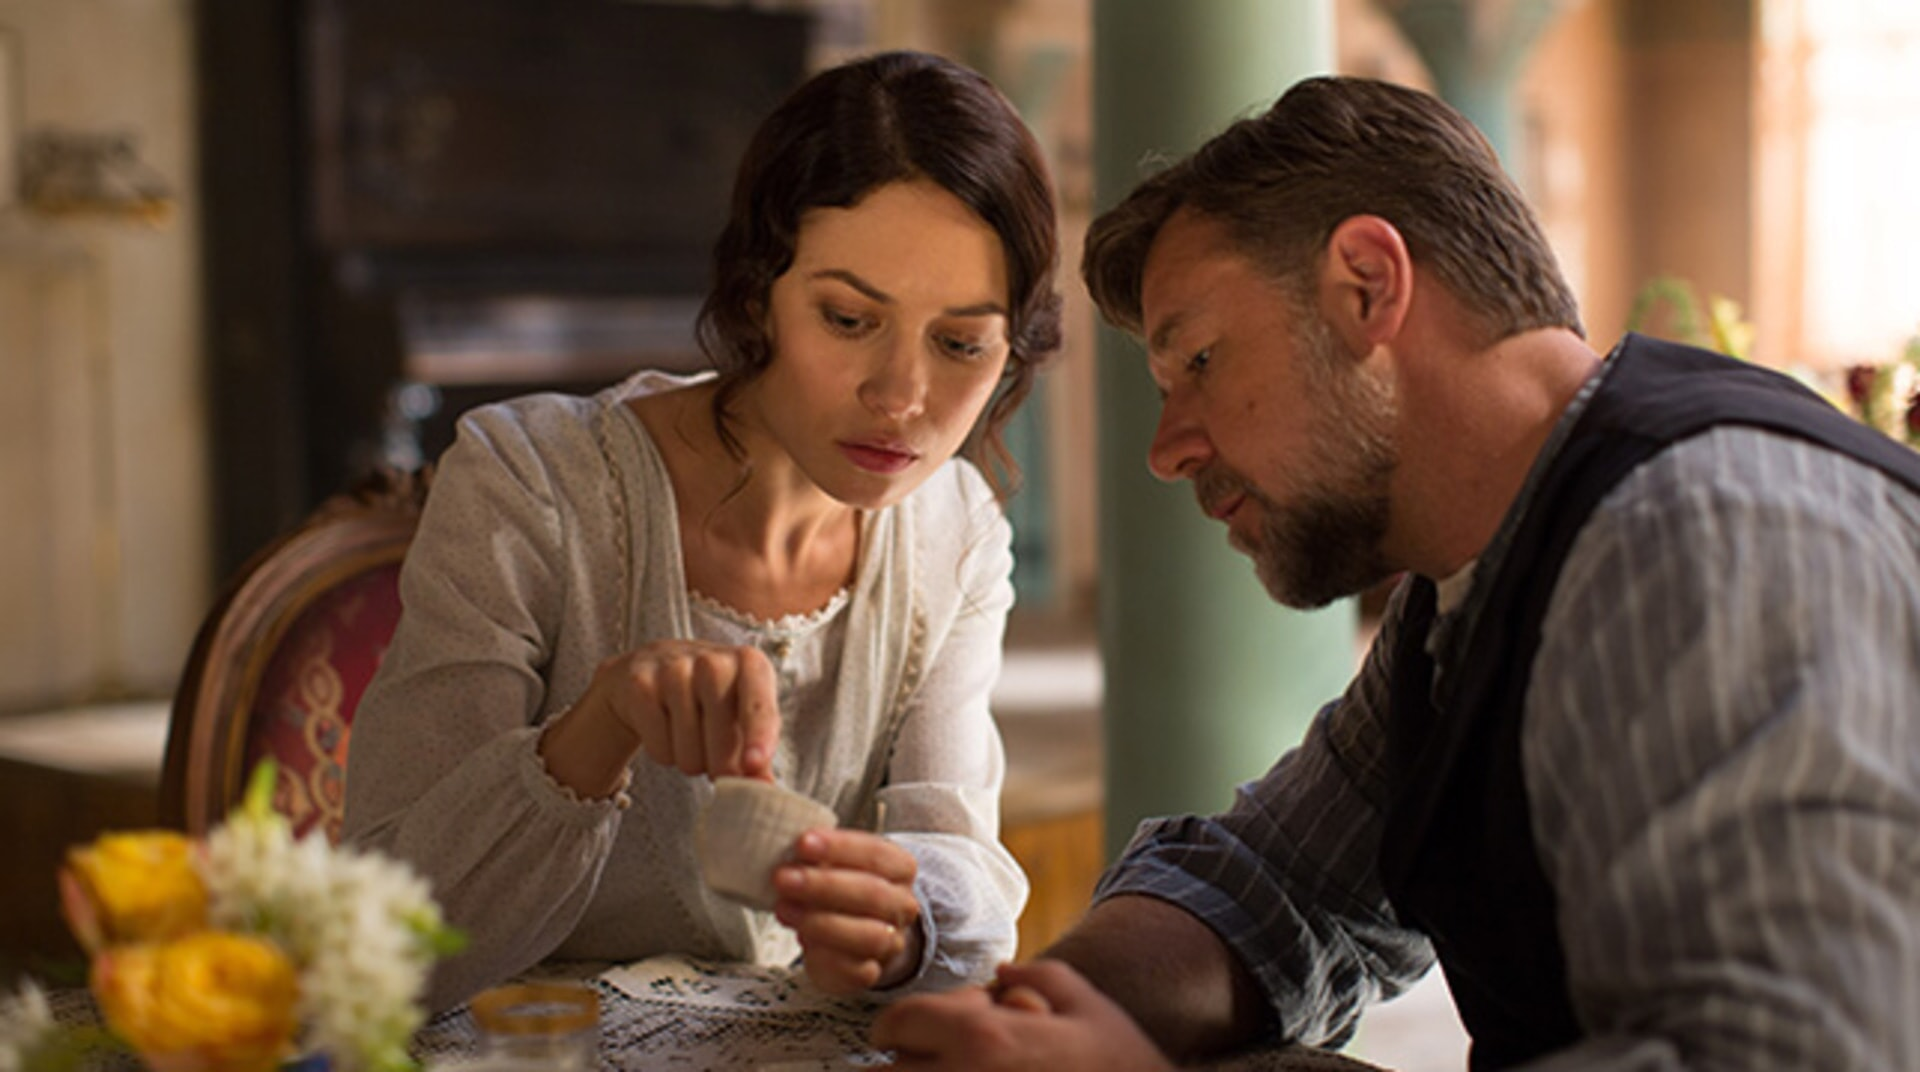 The Water Diviner - Image 4